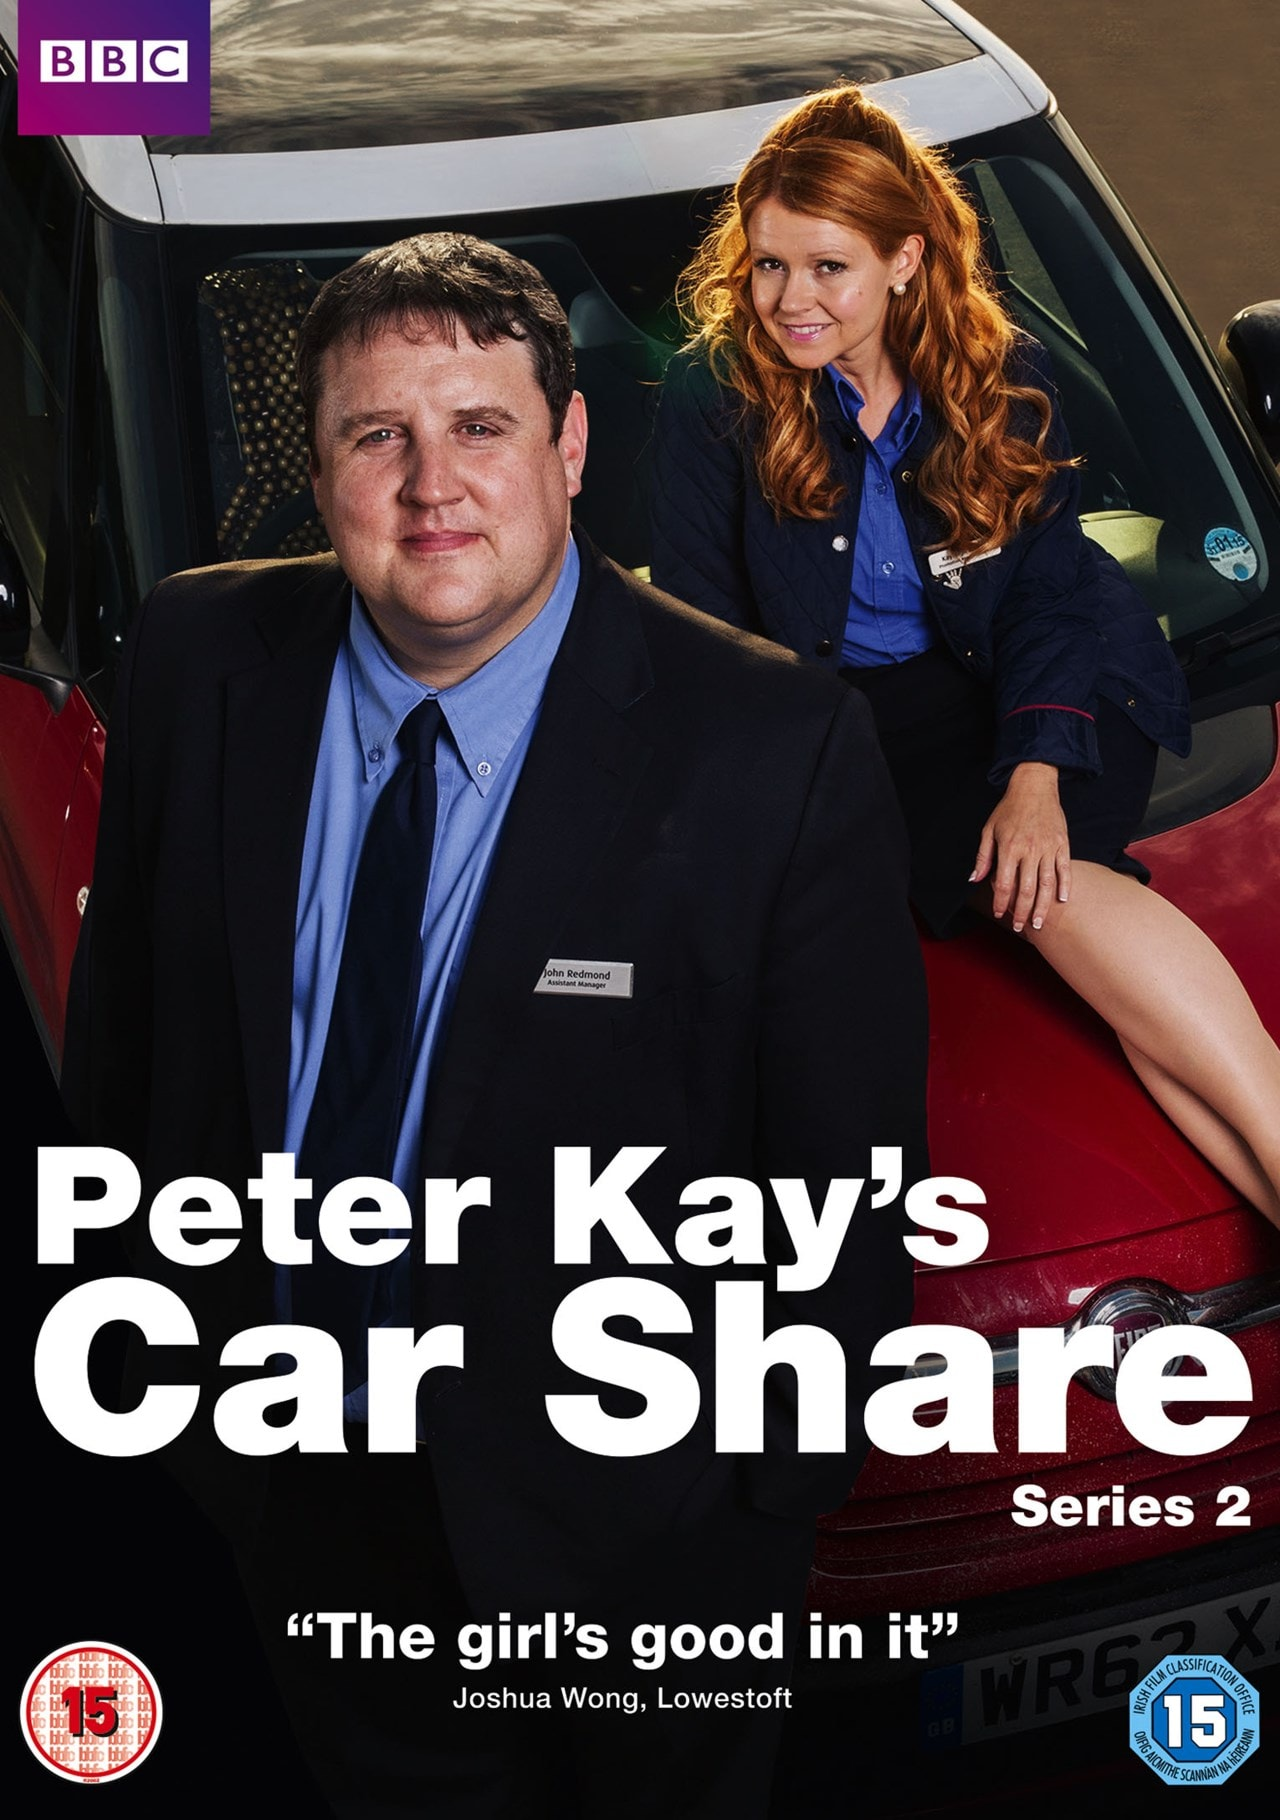 Peter Kay's Car Share: Series 2 - 1